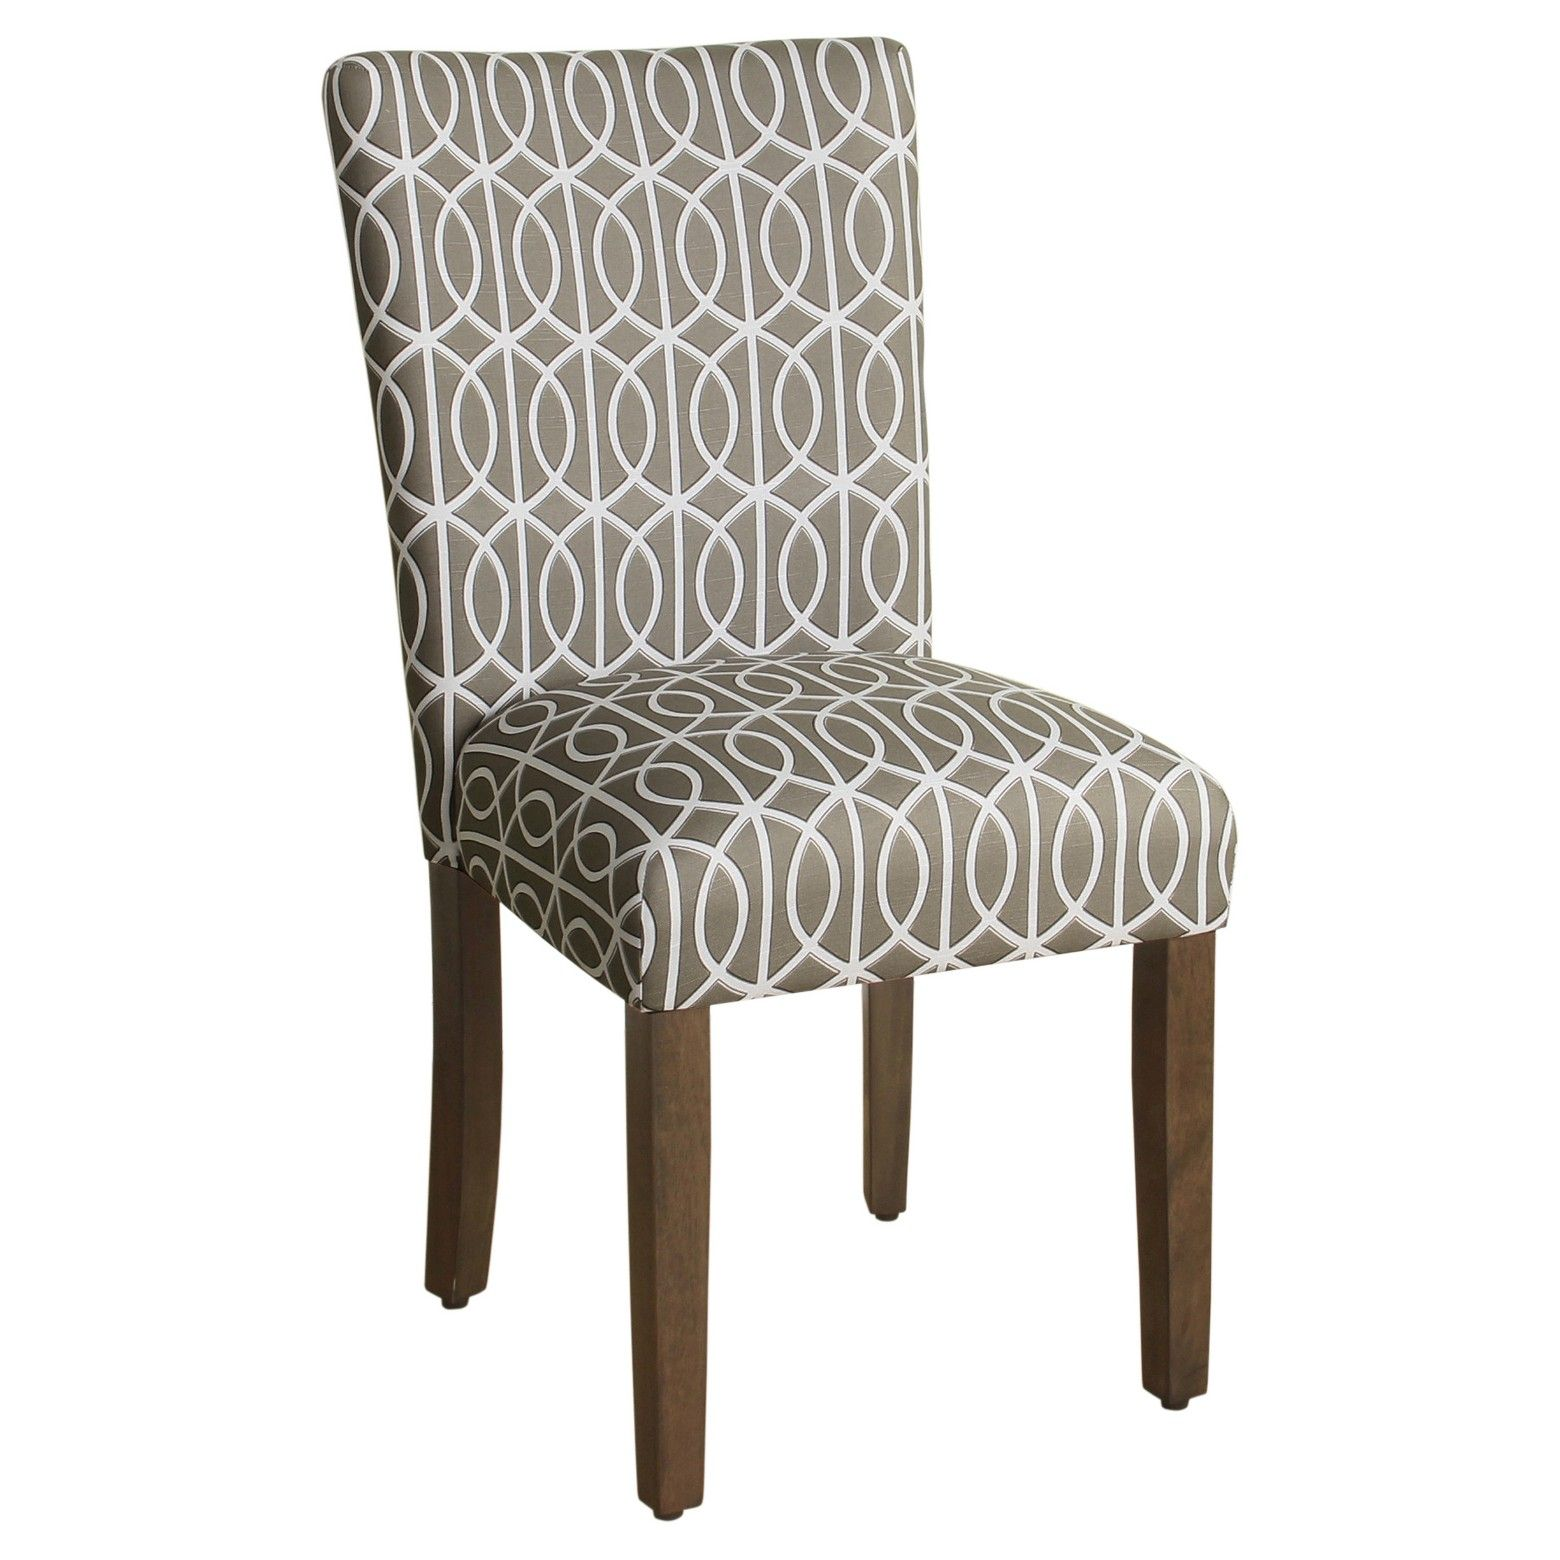 Tufted Fabric Parsons Dining Chairs Set Of 2 39 8 X22 4 X17 5 Upholstered High Back Padded Dining Chairs W Solid Wood Legs Classic Linen Parsons Chair For Ho Linen Dining Chairs Dining Chairs Tufted Dining